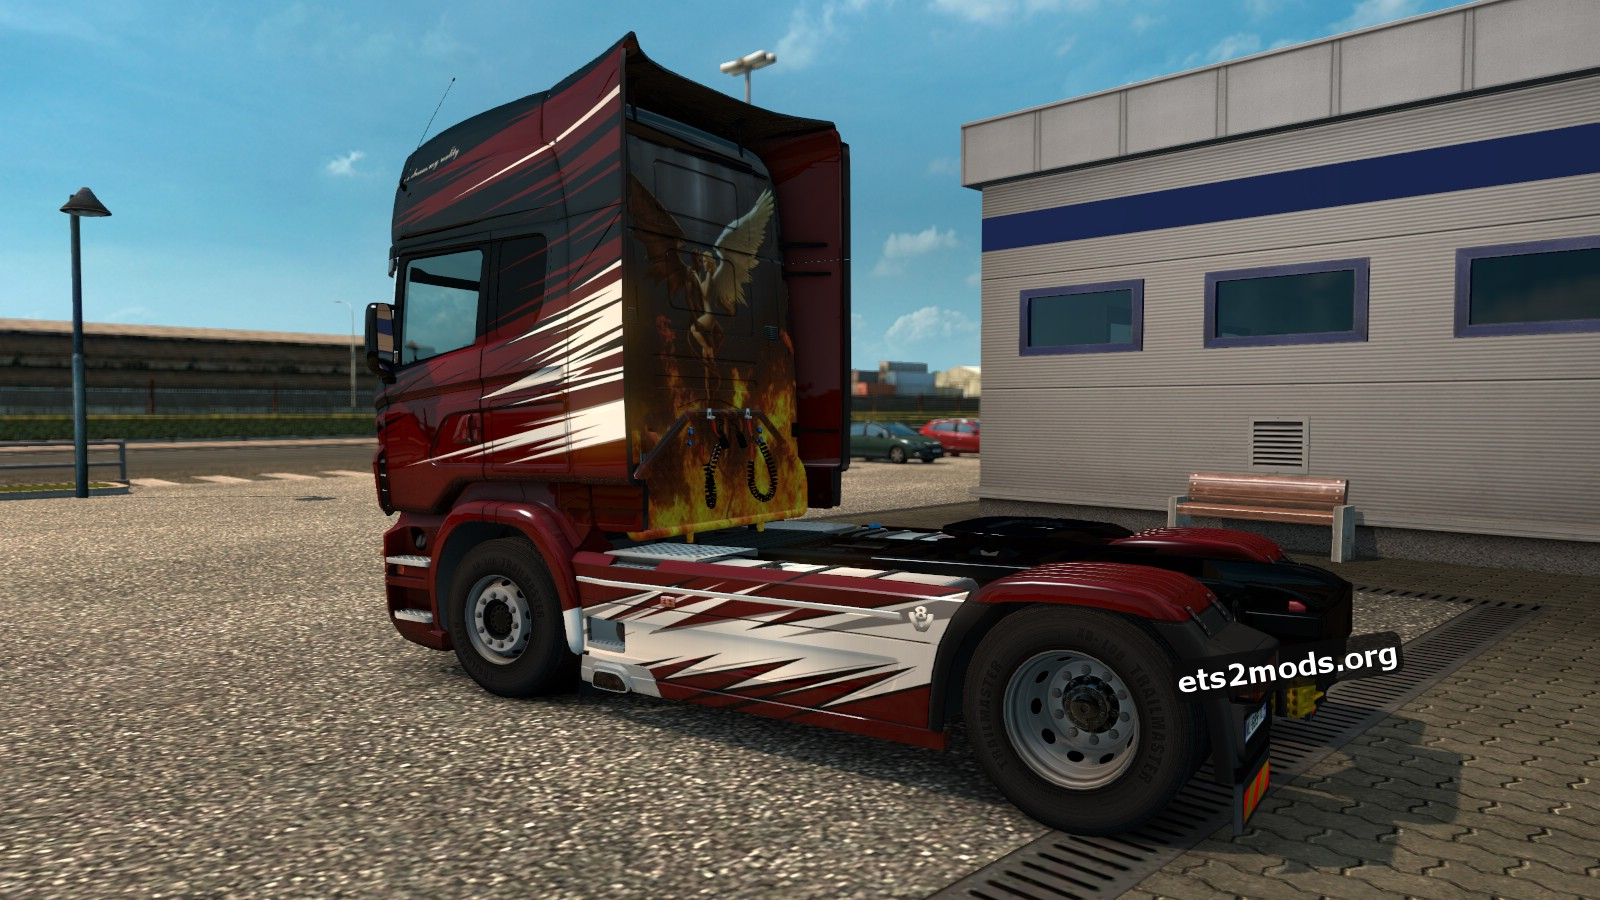 Valcarenghi Skin for Scania RJL